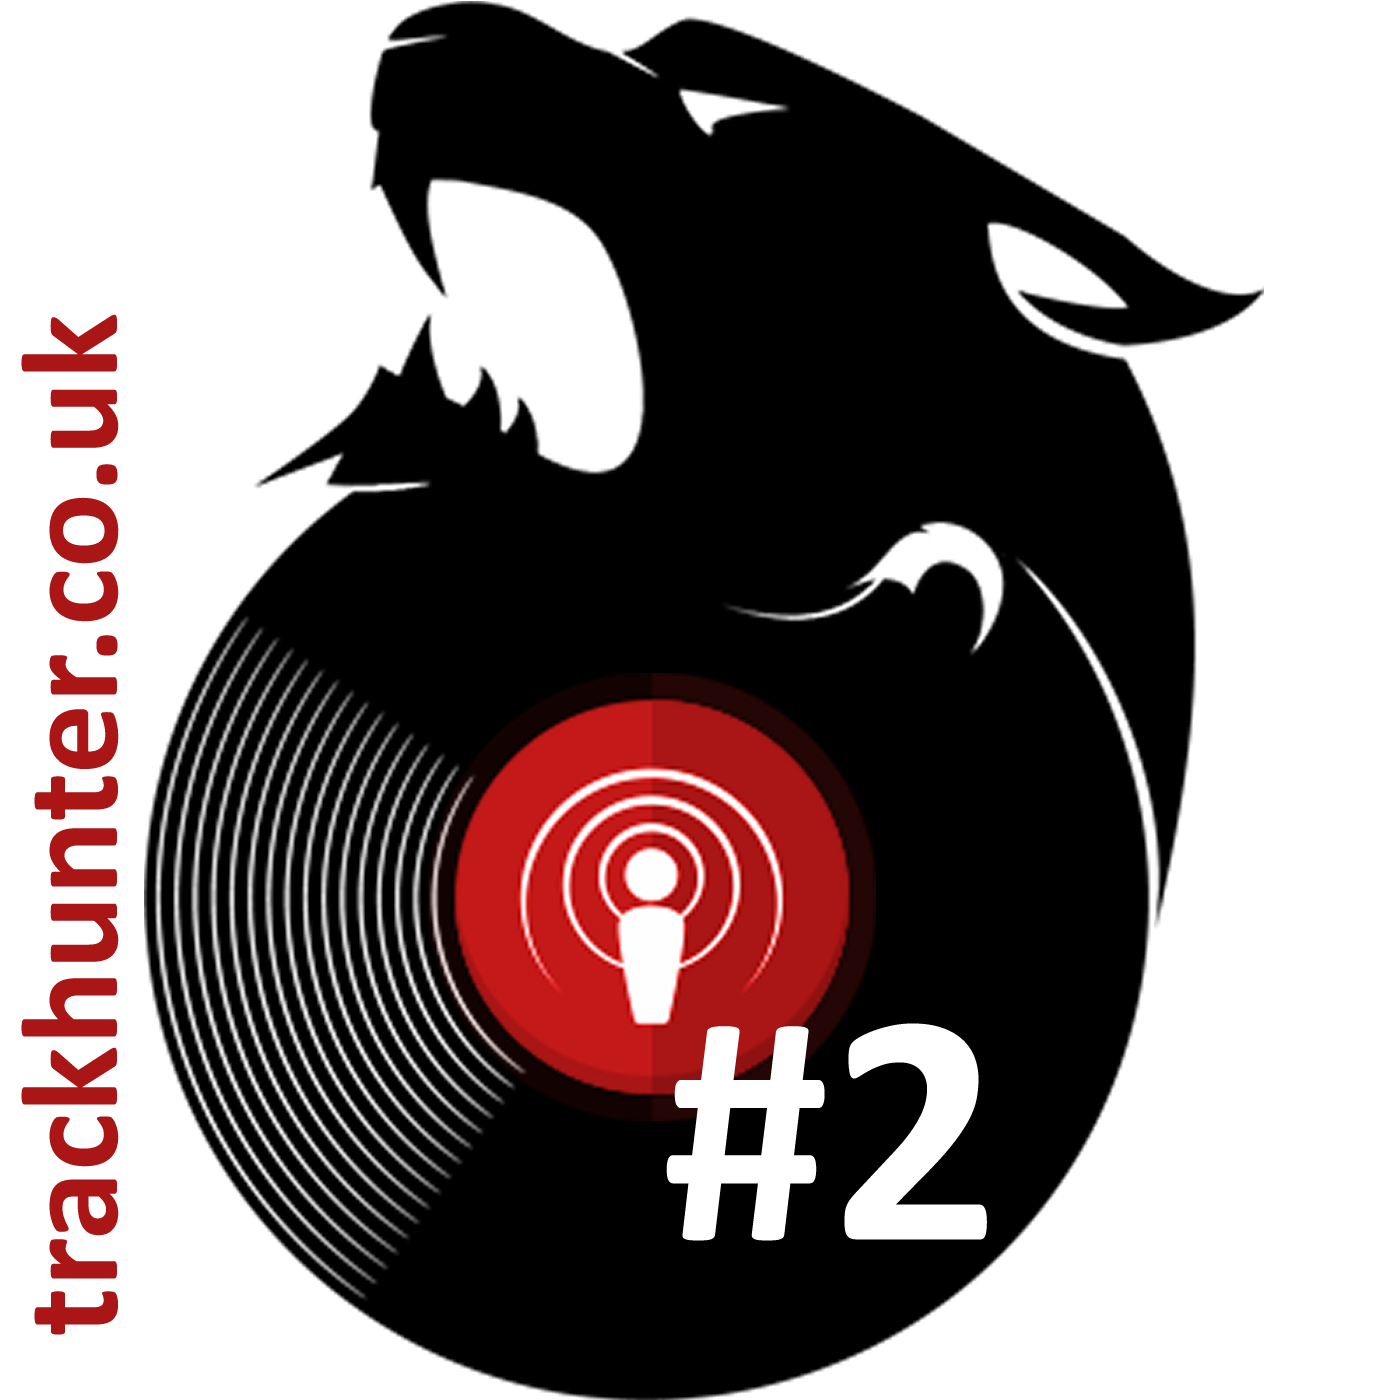 Trackhunter Podcast #2 by Keith Boynton